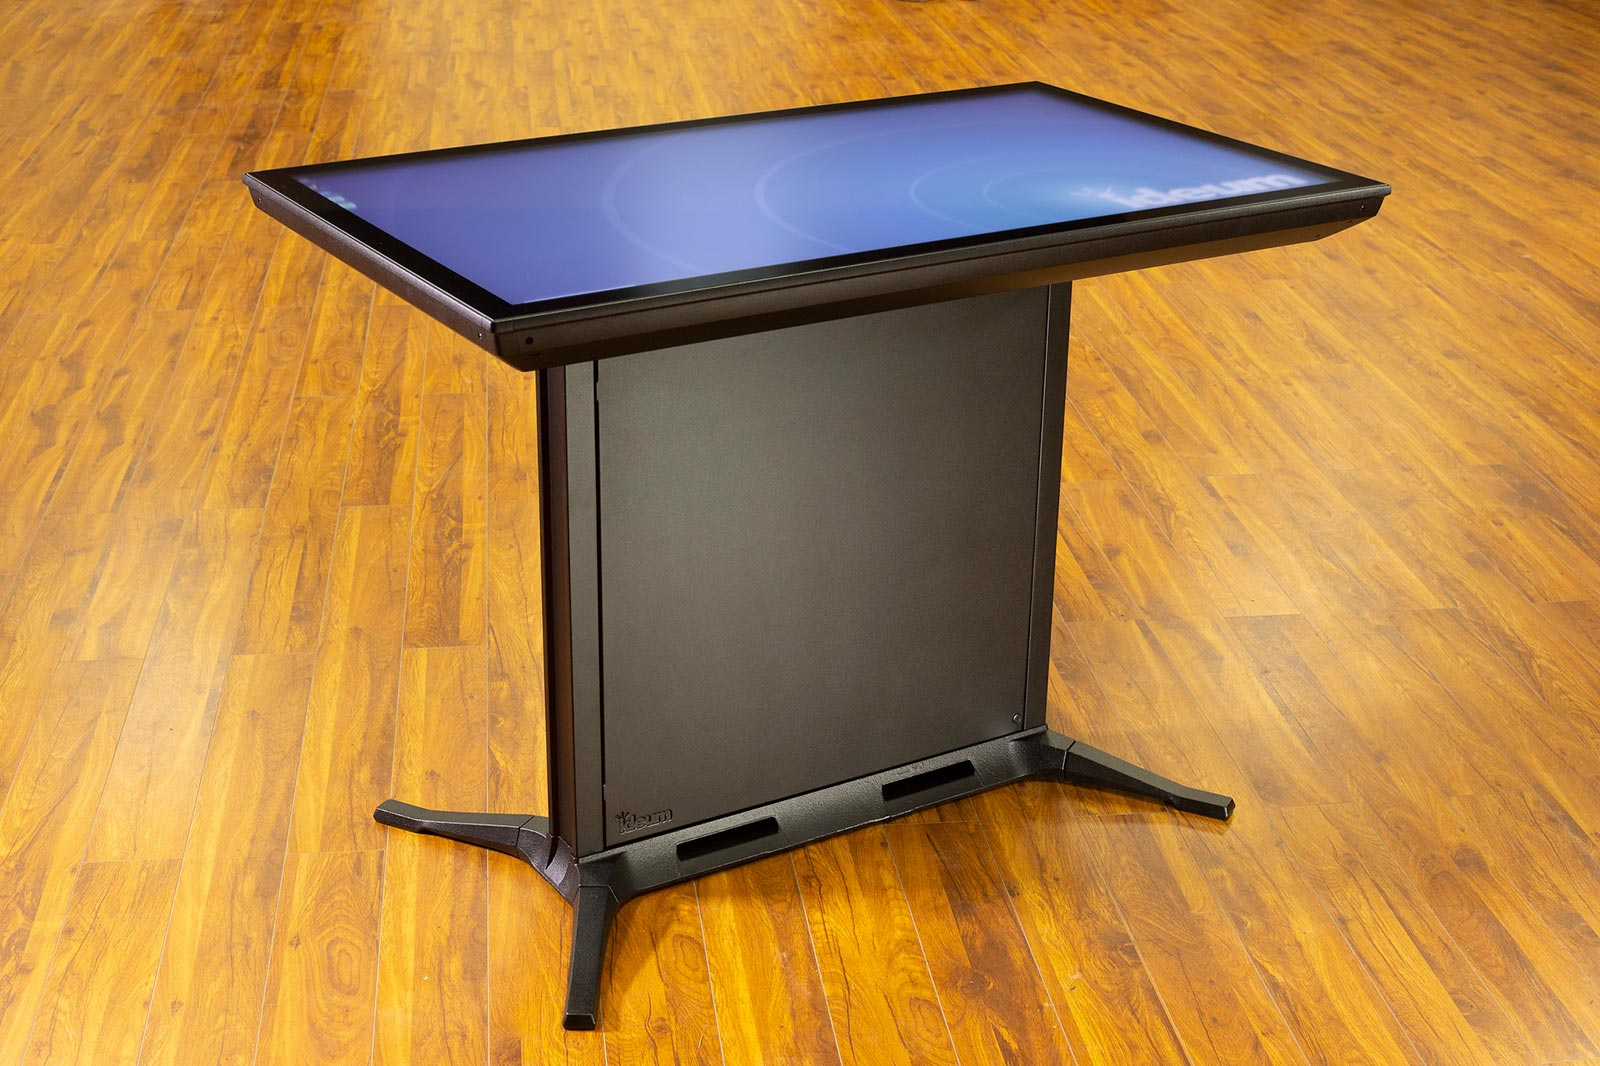 Large Format Multitouch Displays and Touch Tables - White